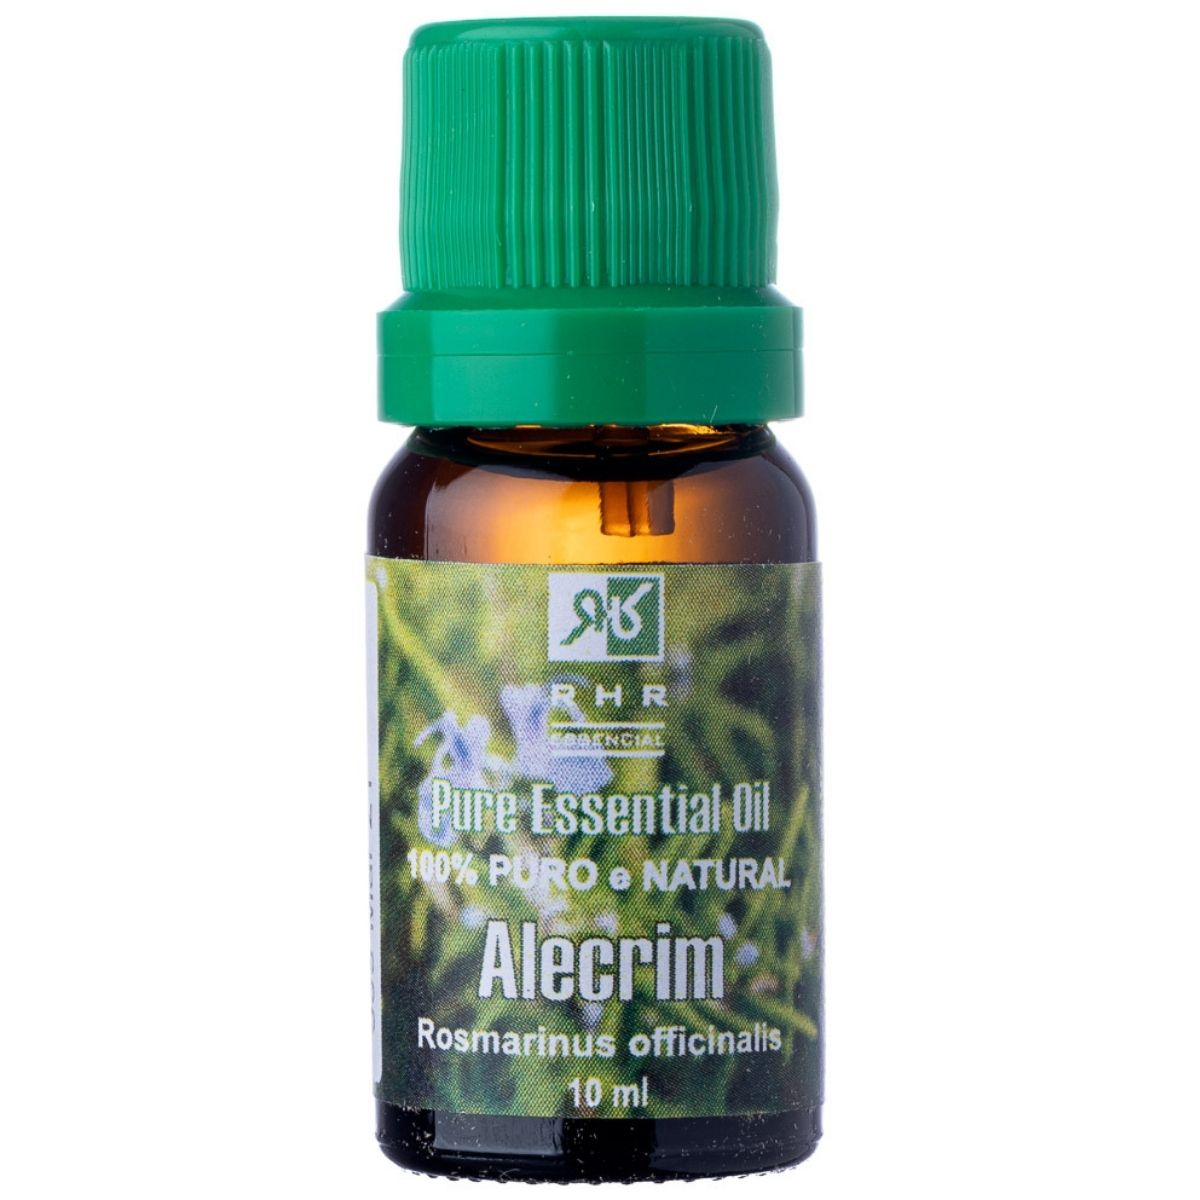 Óleo Essencial Alecrim 10ml RHR - 100% Puro e Natural